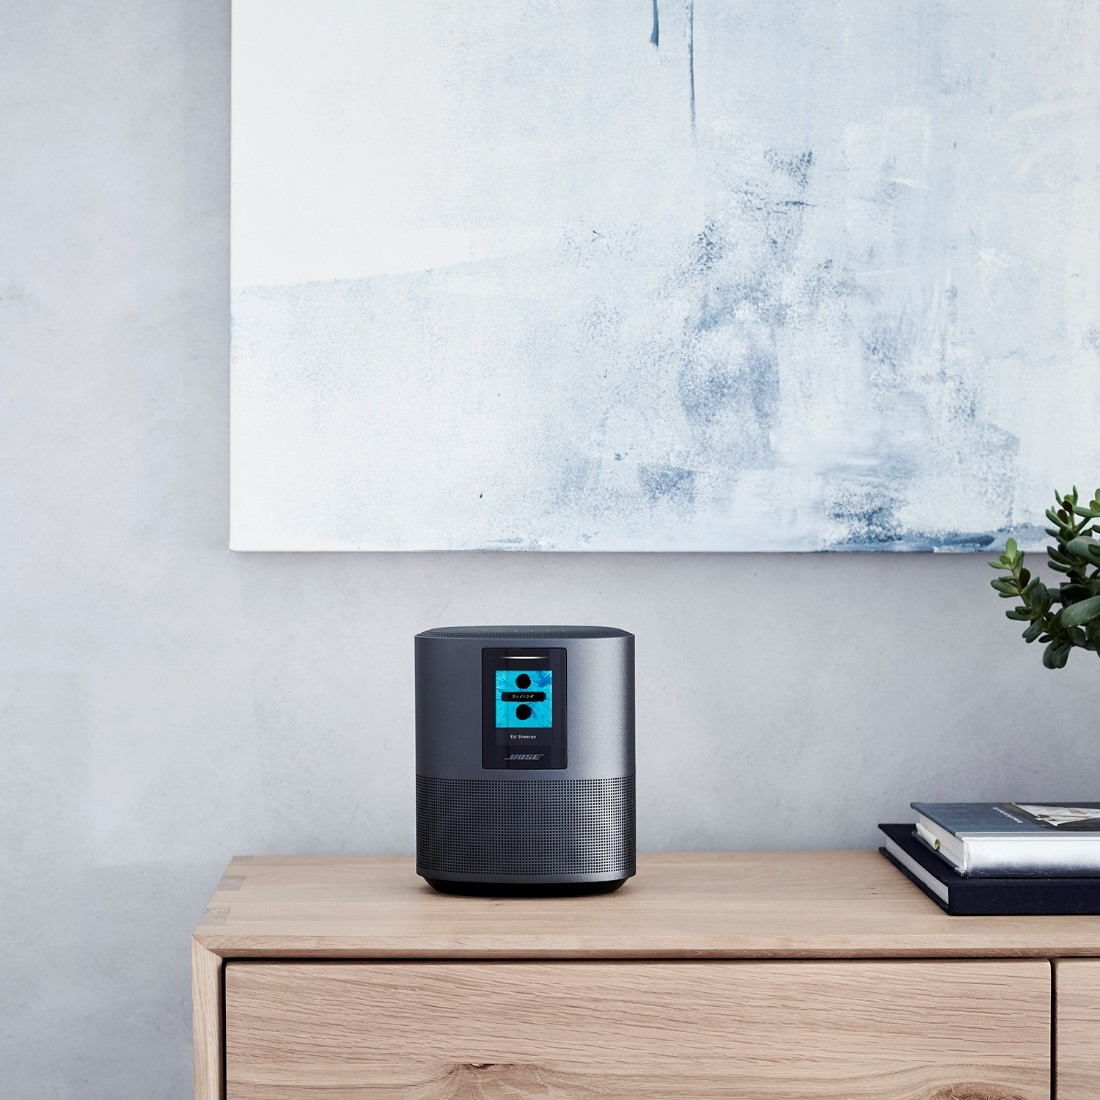 Bose smart speakers and soundbars are voice controlled through Alexa, or control them with the Bose Music App. Bluetooth and Wi-Fi connectivity. Learn more.